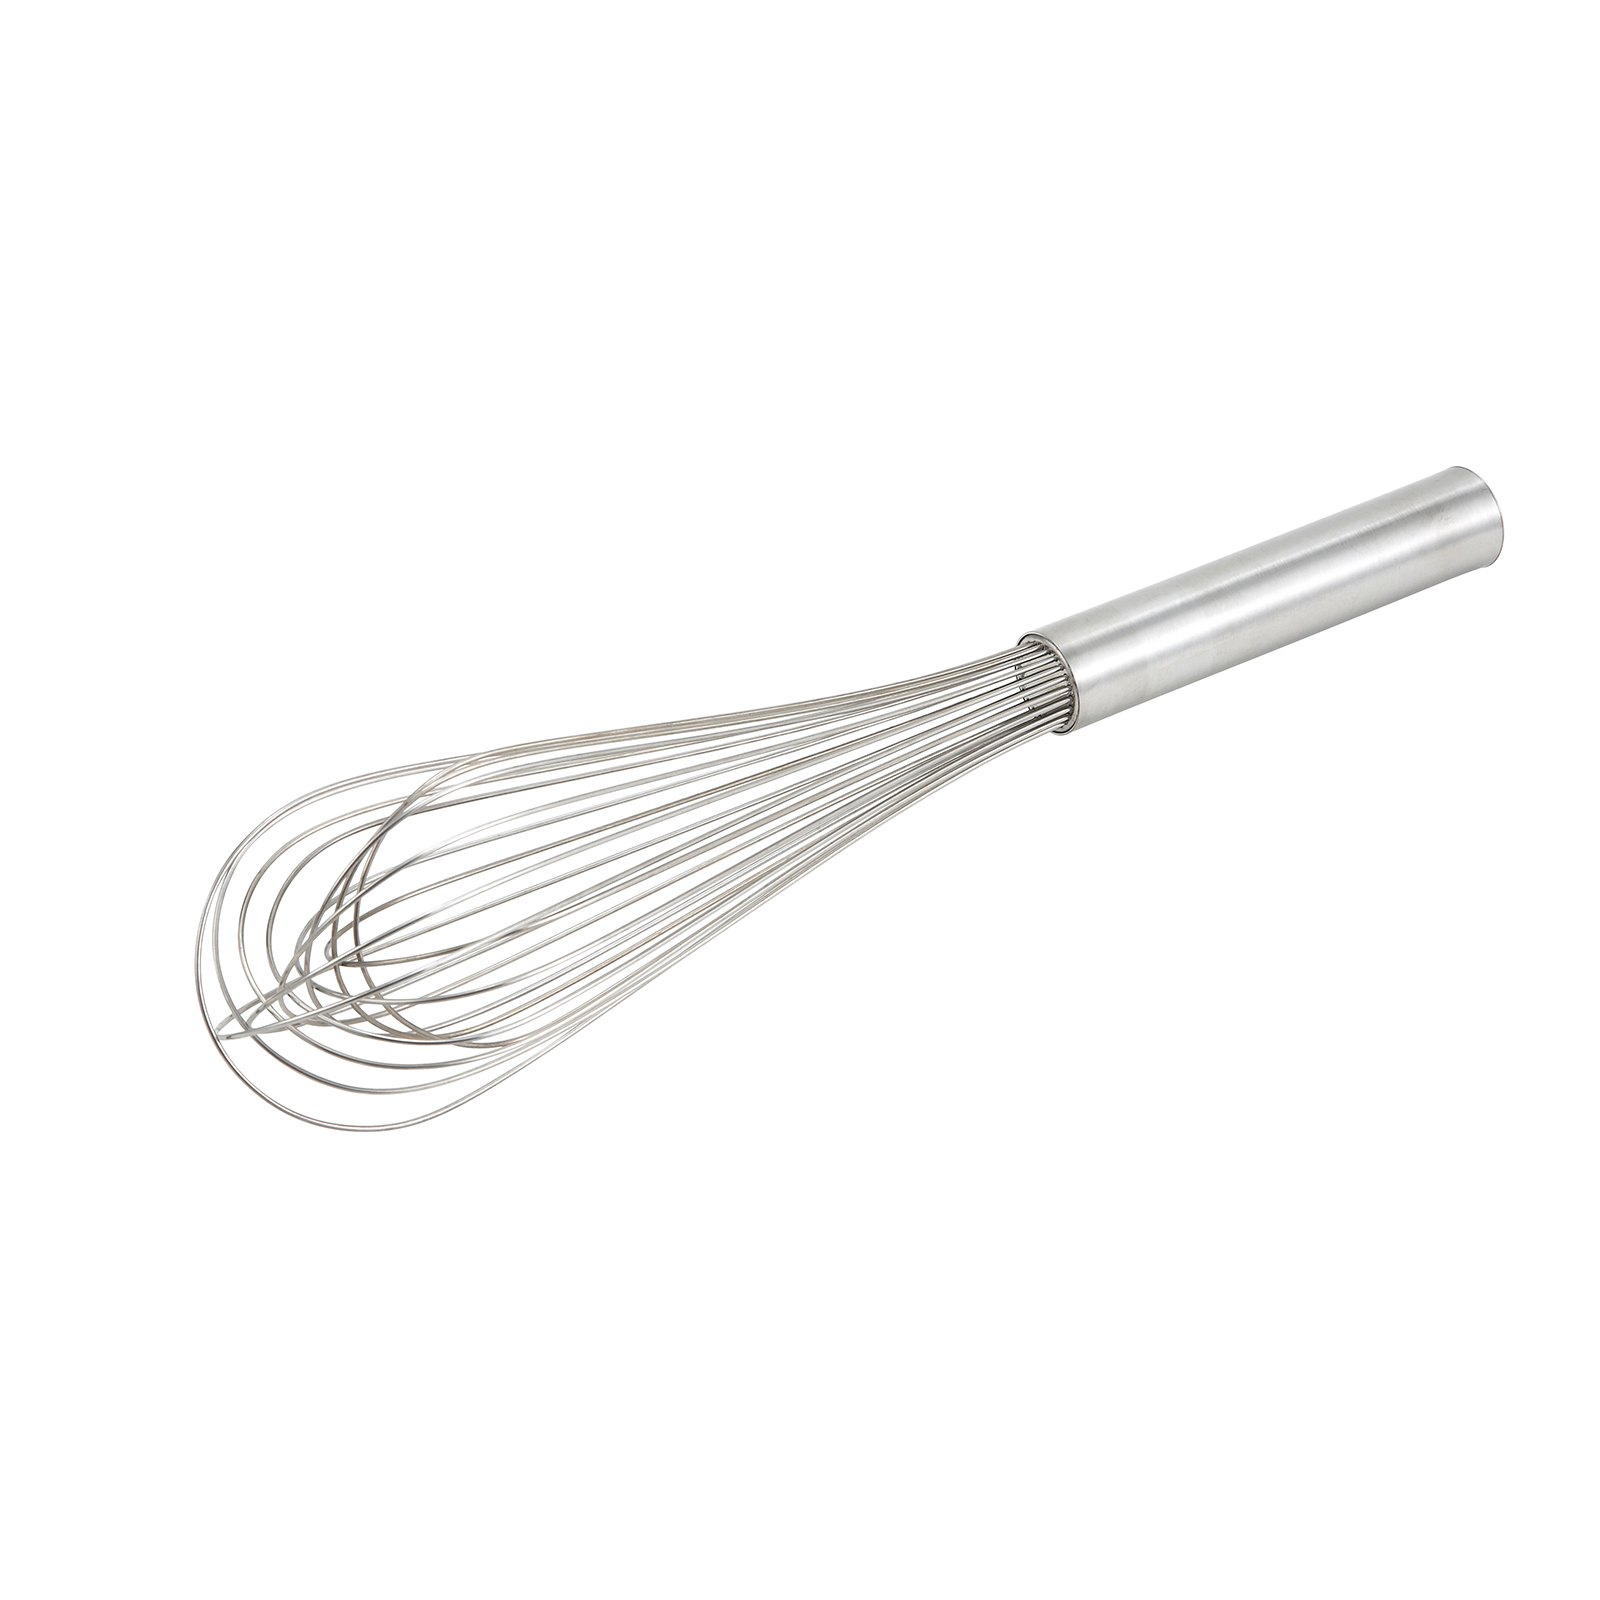 Winco PN-14 piano whip / whisk